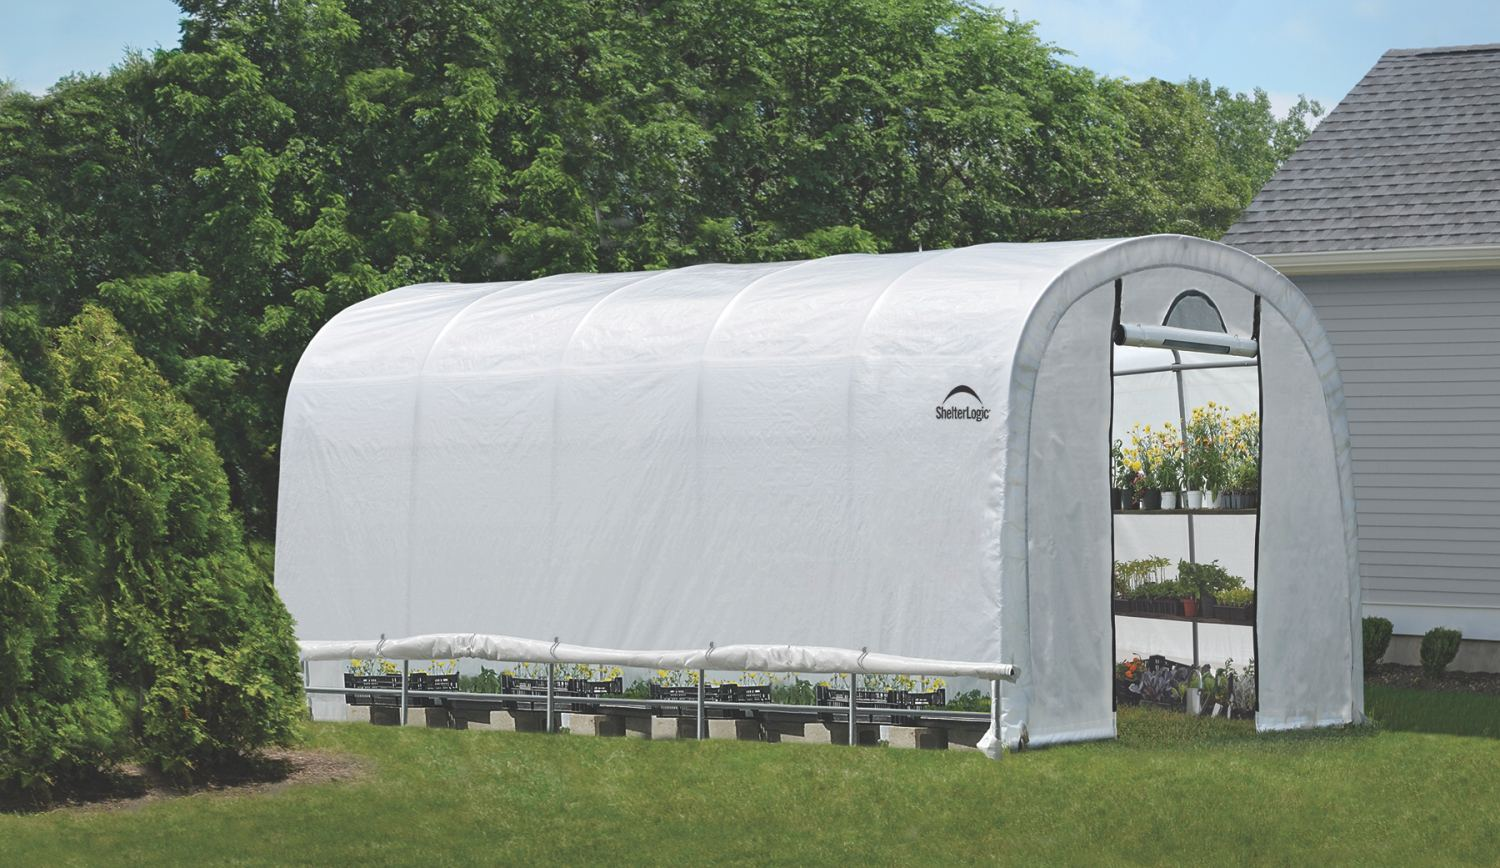 SHELTERLOGIC 3,7x6,1 m - 41 mm - 70592EU fóliovník